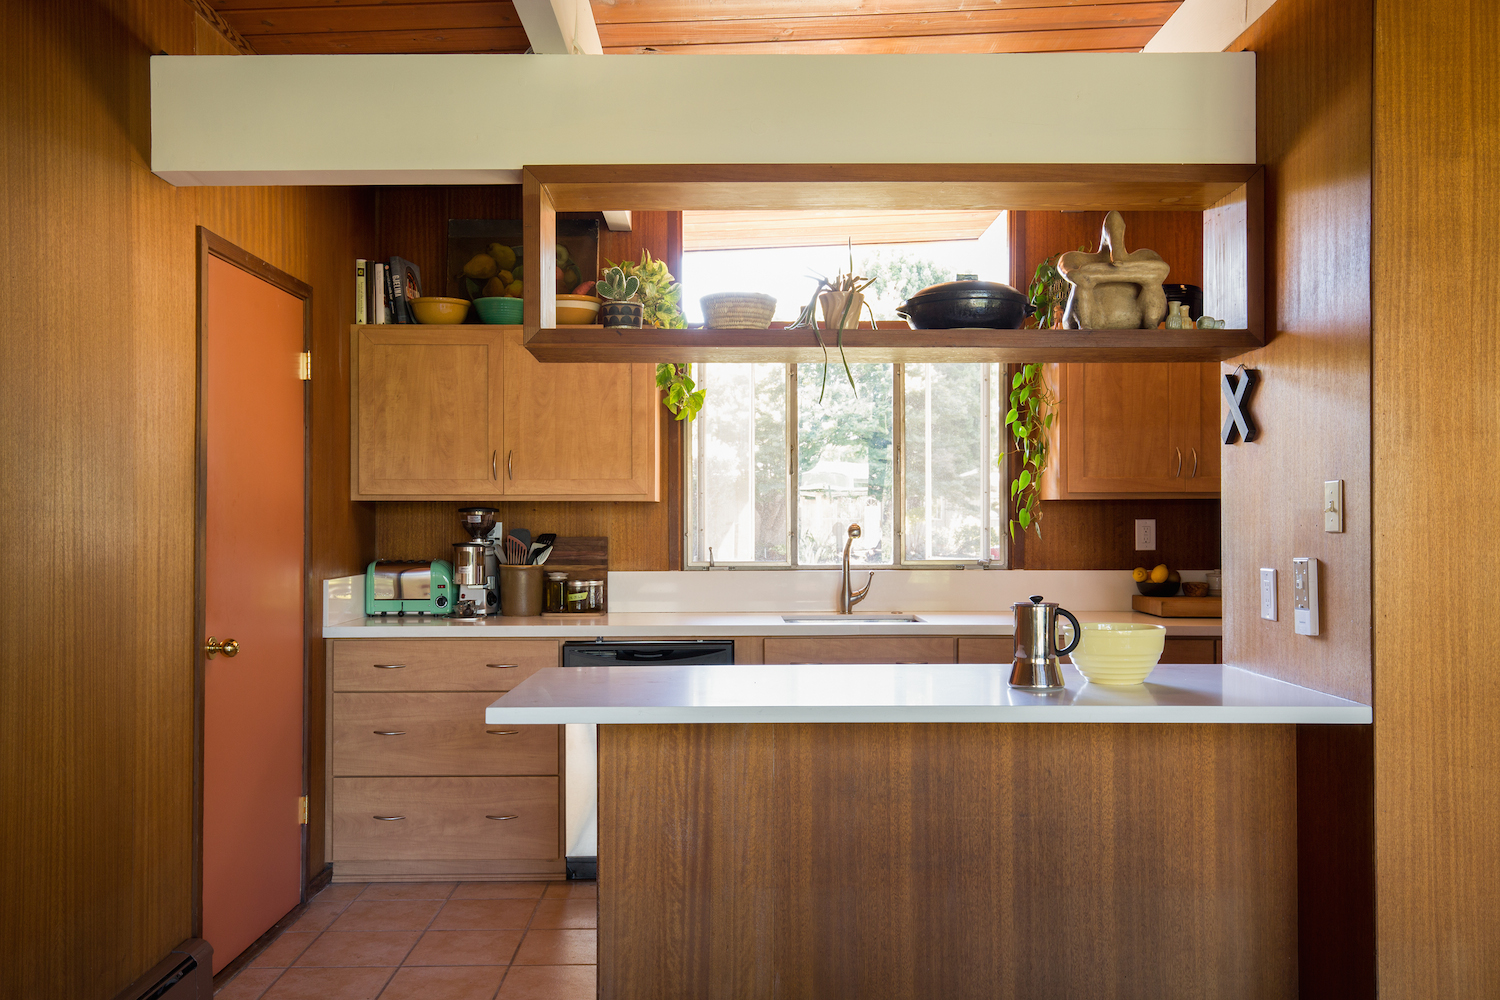 Best Kitchen Gallery: 20 Charming Midcentury Kitchens Ranked From Virtually Untouched of Mid Century Kitchen Cabinets on cal-ite.com